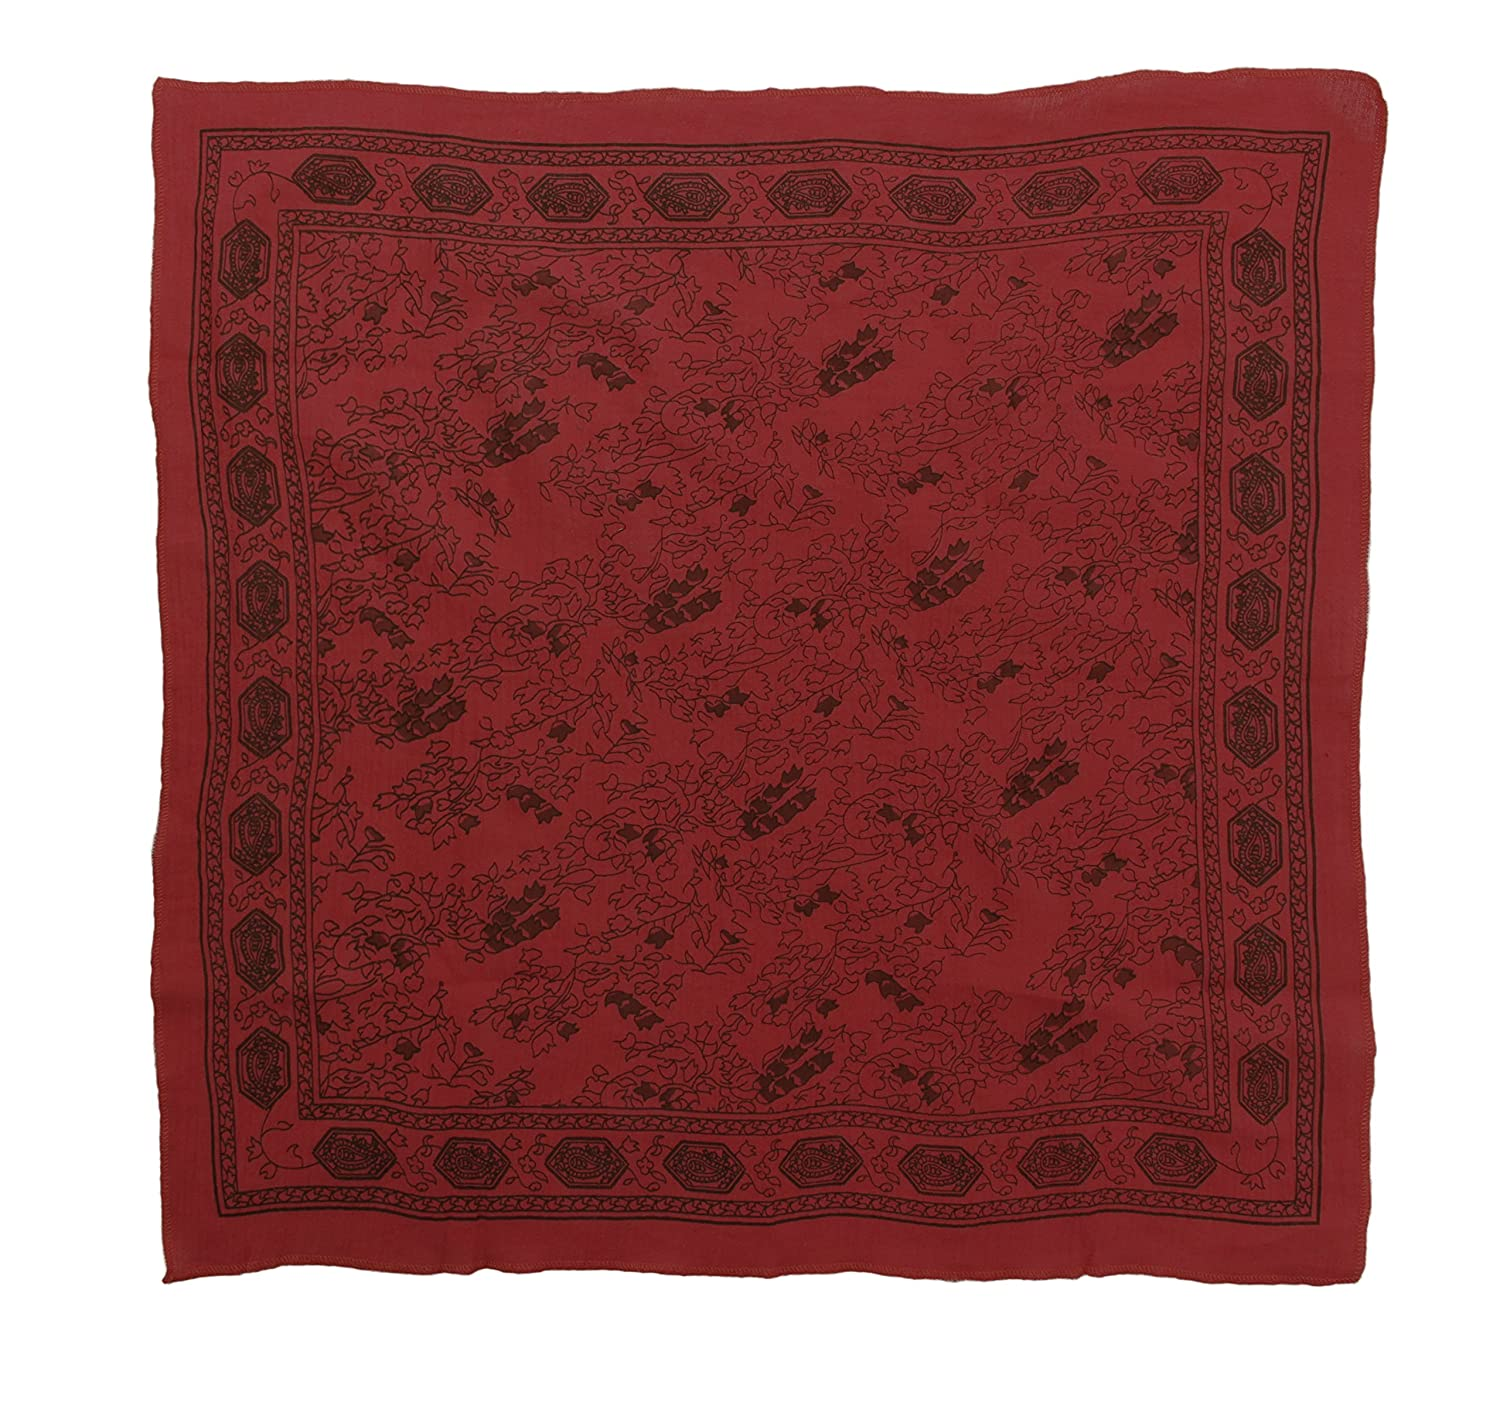 Jack Sparrow Style Red Print Pirate Costume Head Scarf - DeluxeAdultCostumes.com